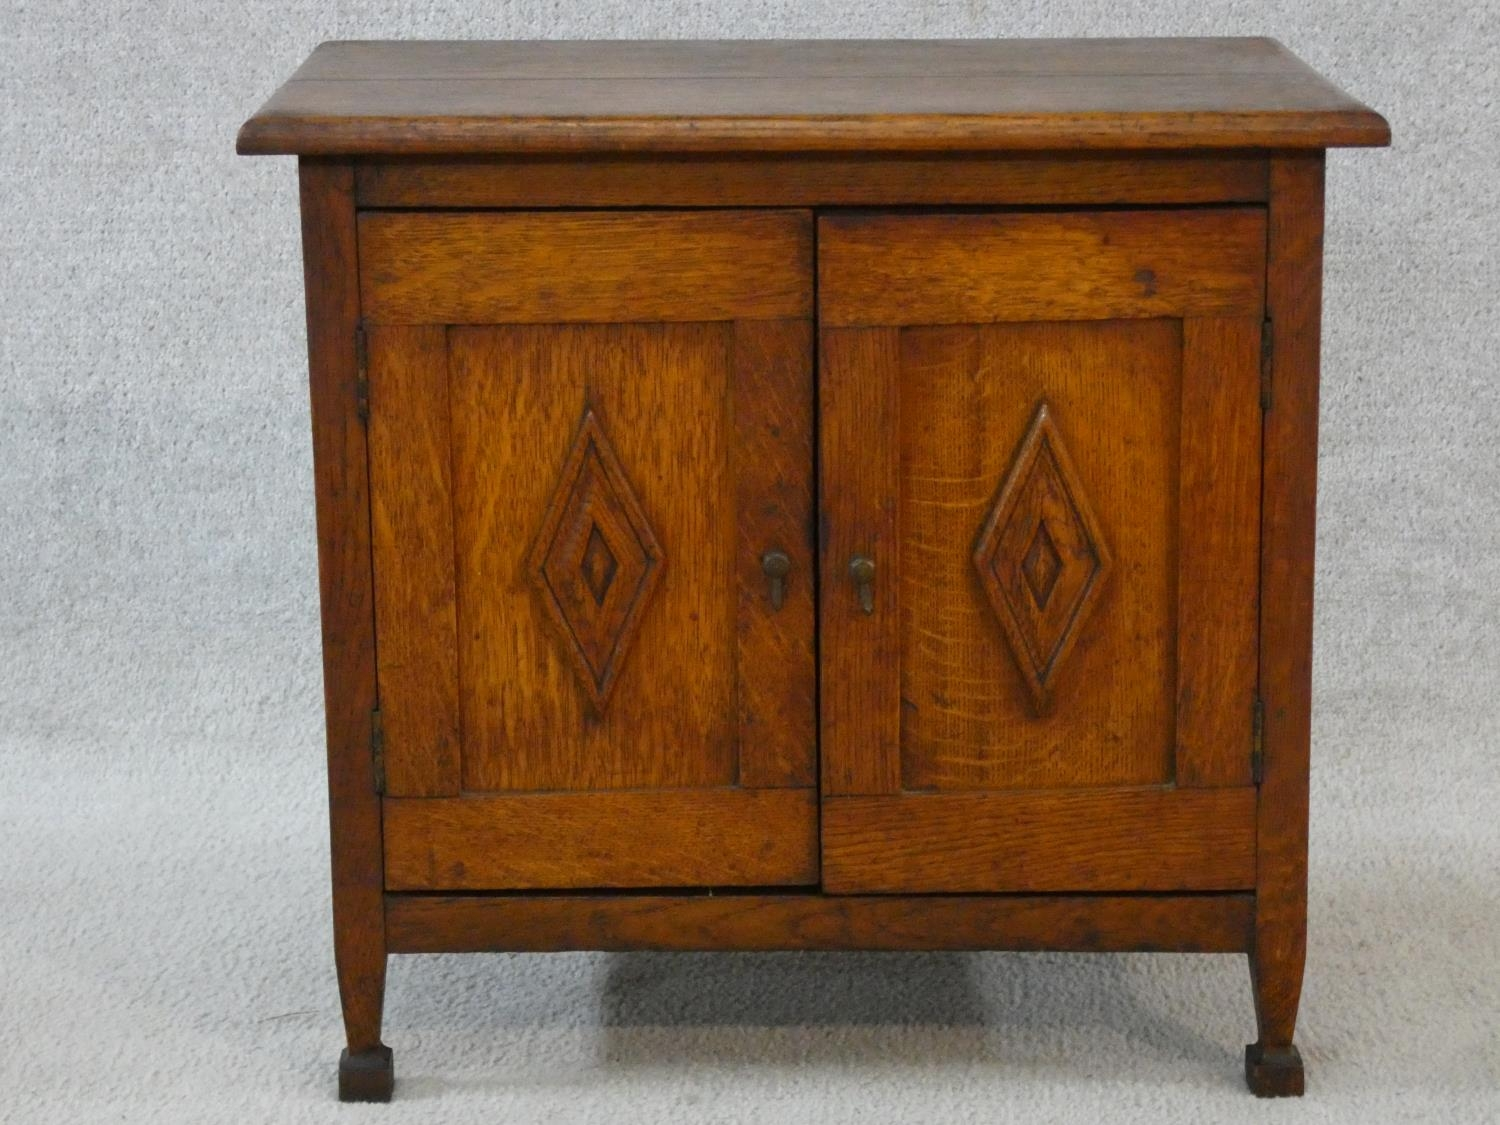 An early 20th century country oak style side cabinet with carved panel doors on squat square - Image 2 of 14